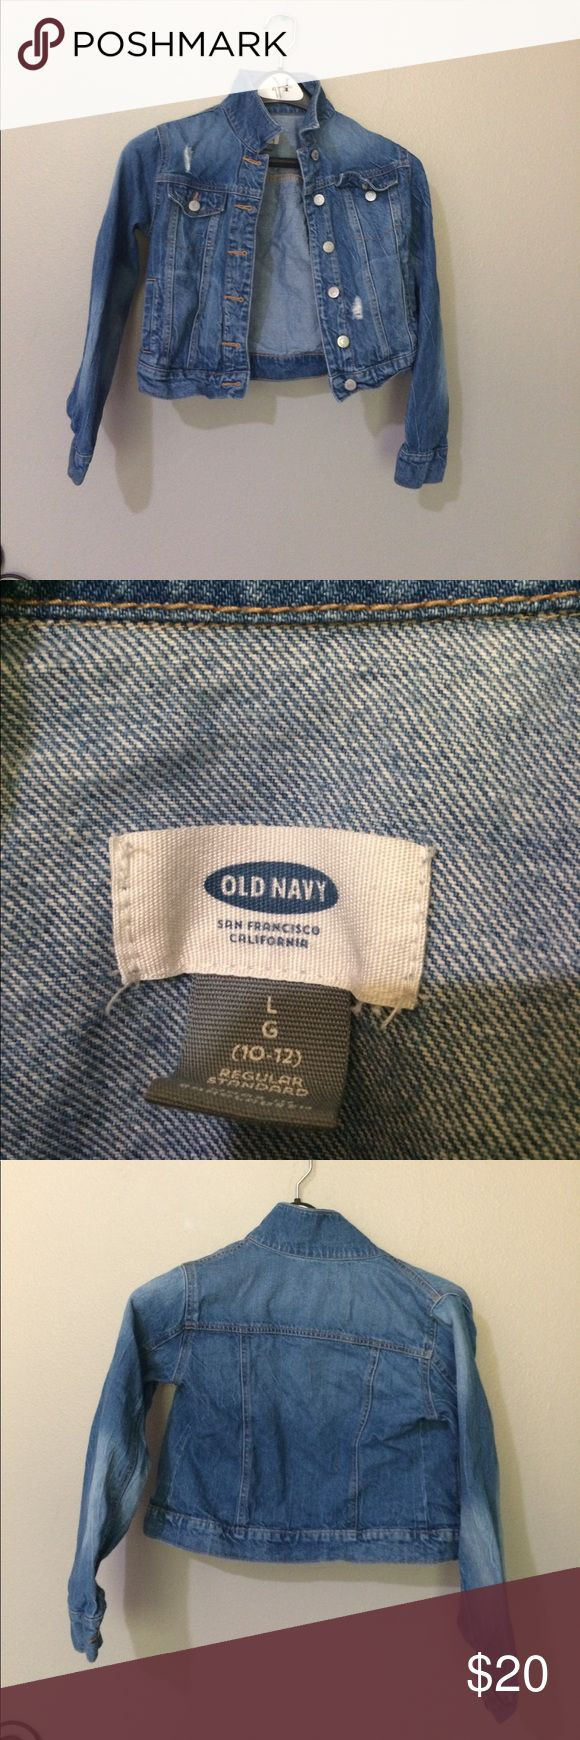 Cropped jean jacket by old navy Cropped jean jacket has some rips however they were meant to be there on the jacket. Overall great condition. Worn several times. Old Navy Jackets & Coats Jean Jackets